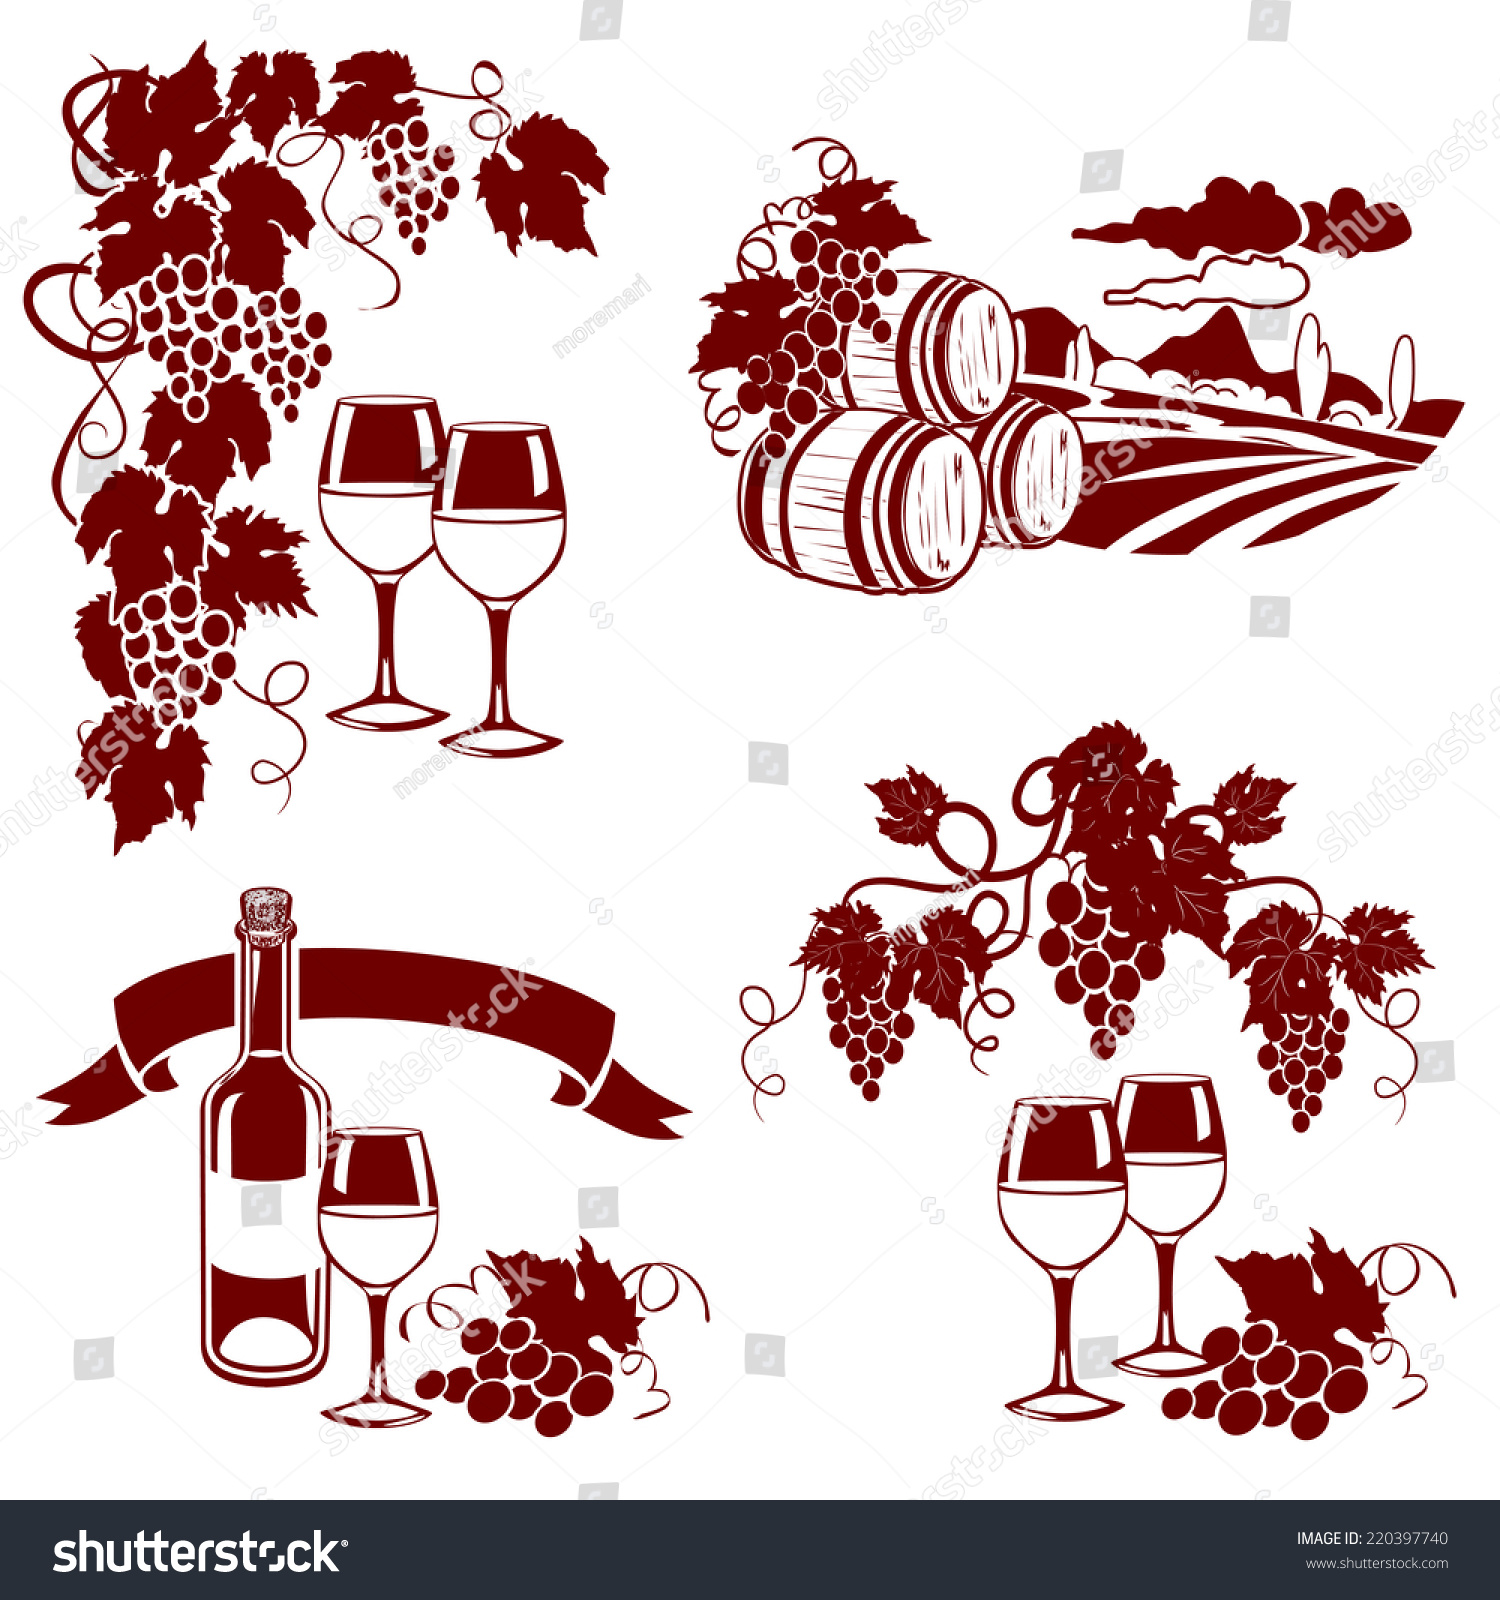 Set wine logos imprint vector illustration stock vector 220397740 set of wine logos imprint vector illustration voltagebd